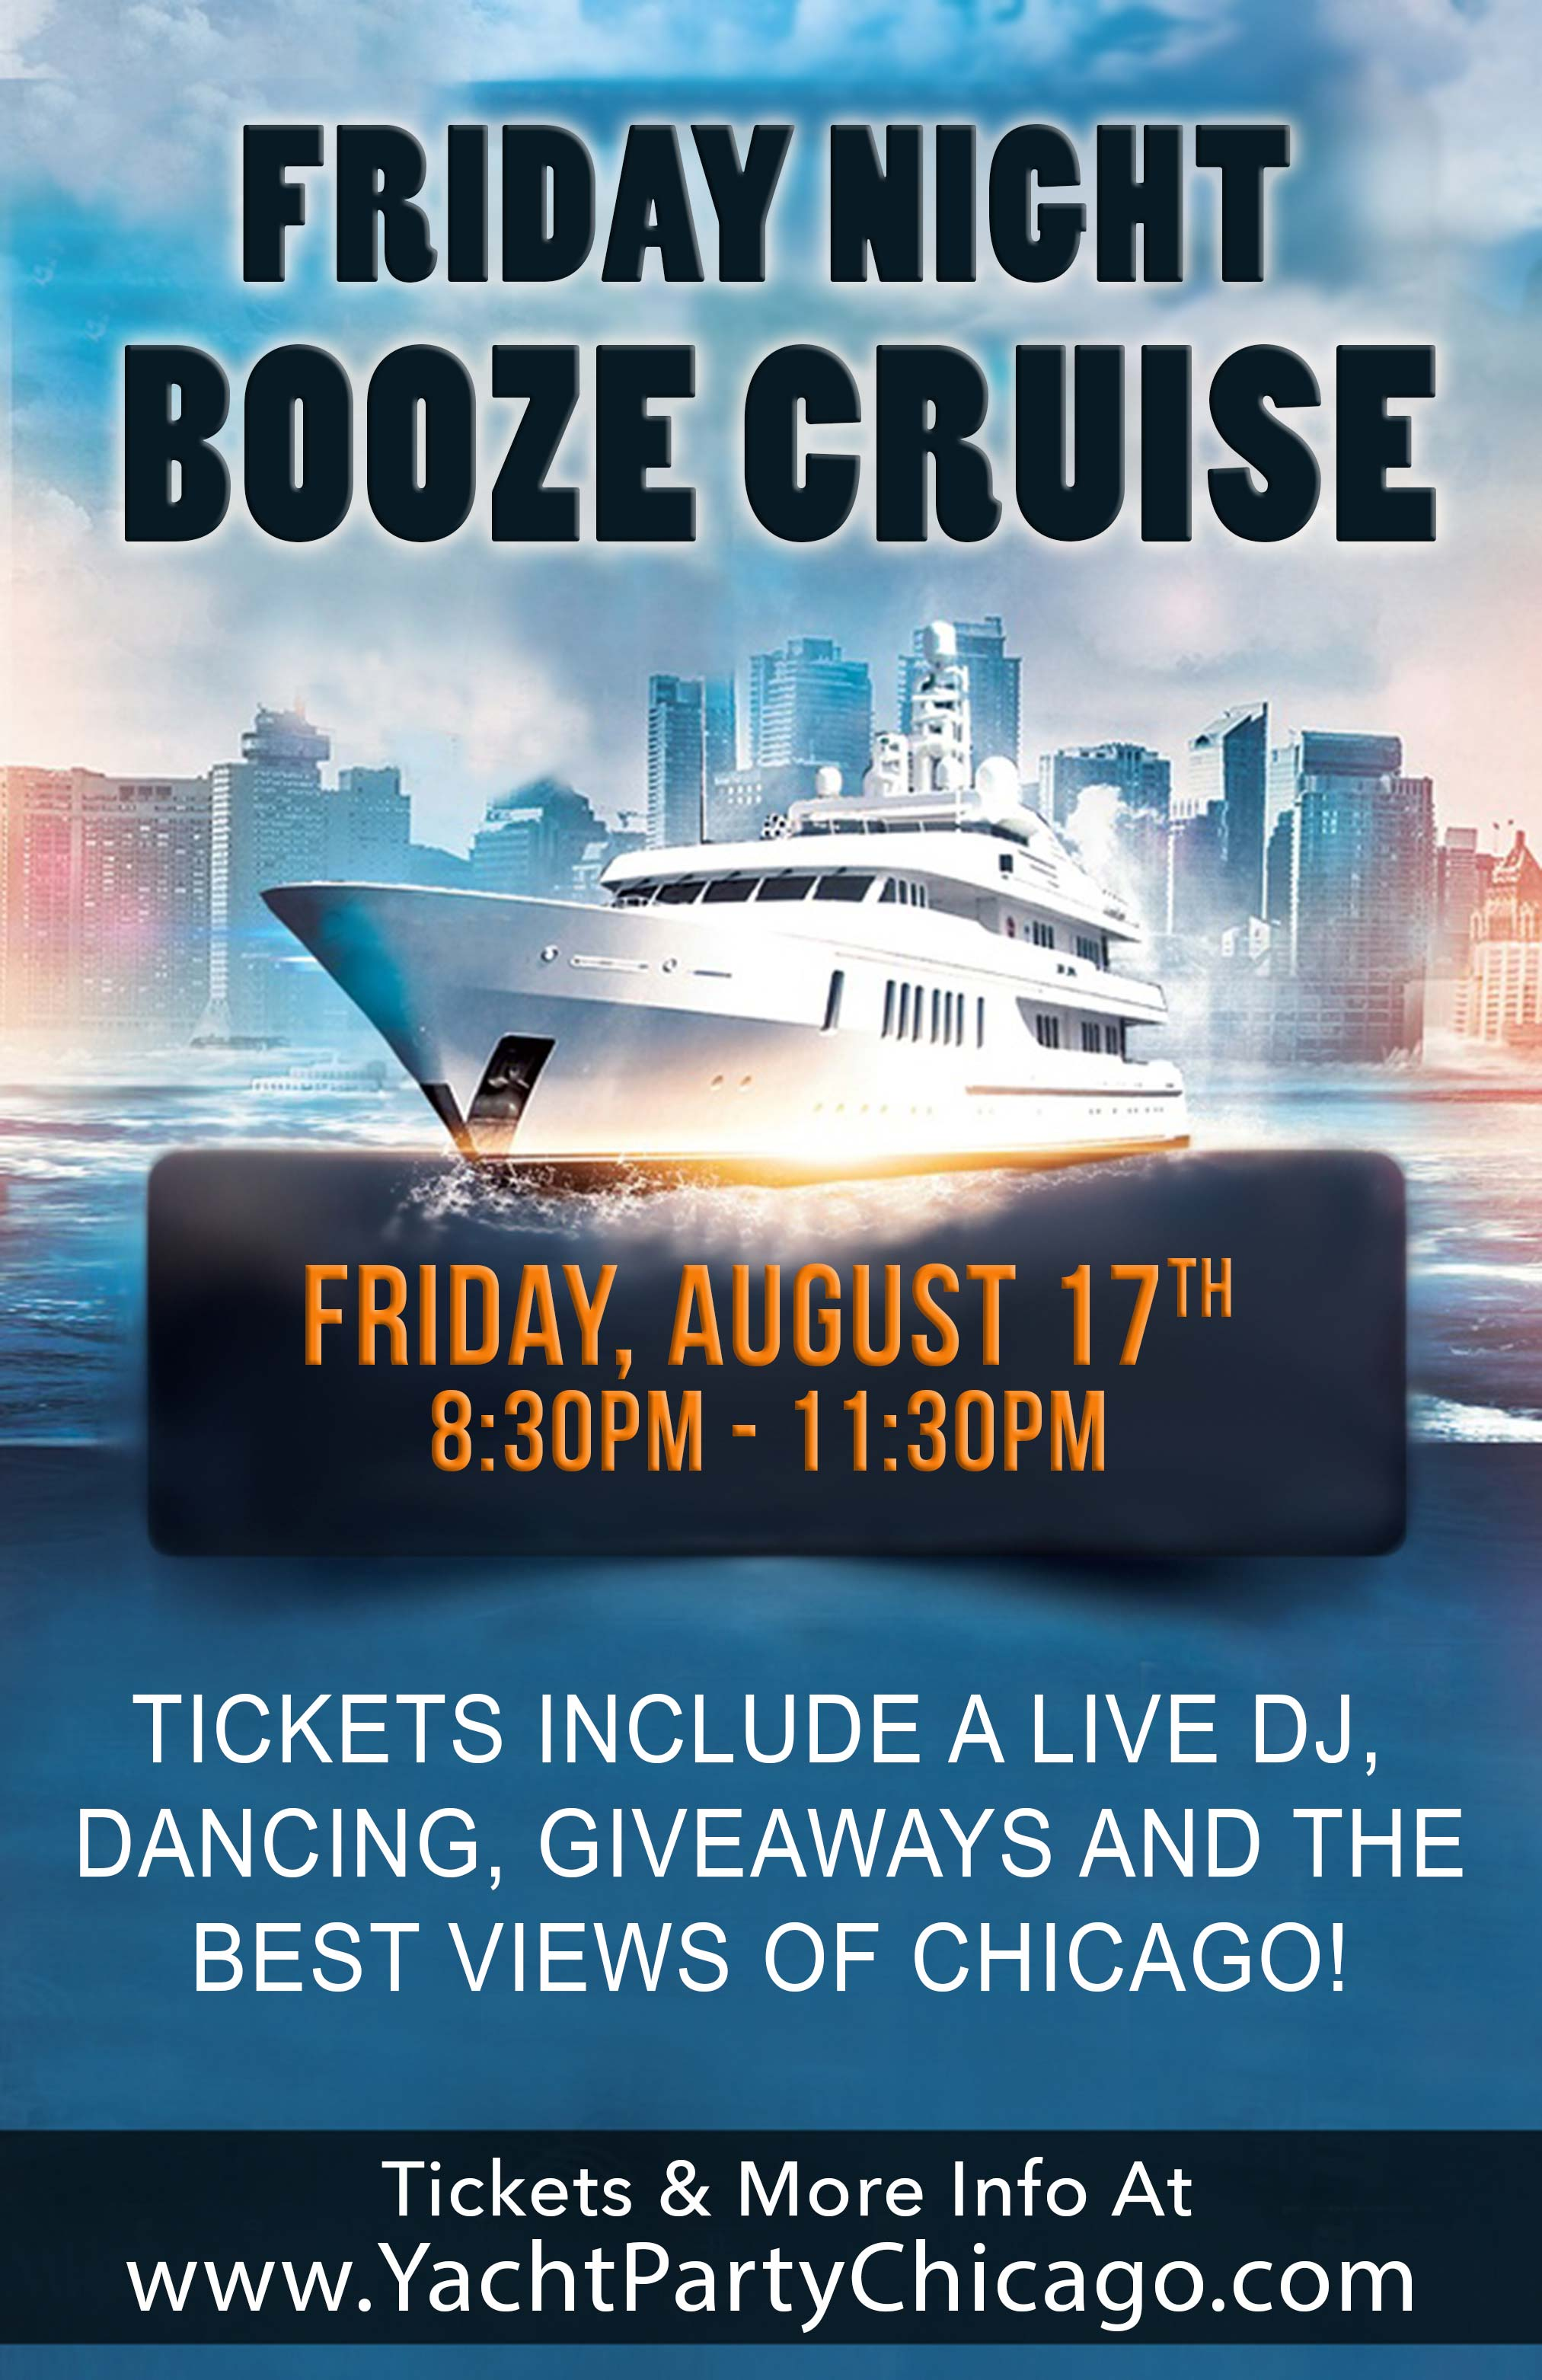 Friday Night Booze Cruise Party - Tickets include a Live DJ, Dancing, Giveaways, and the best views of Chicago!